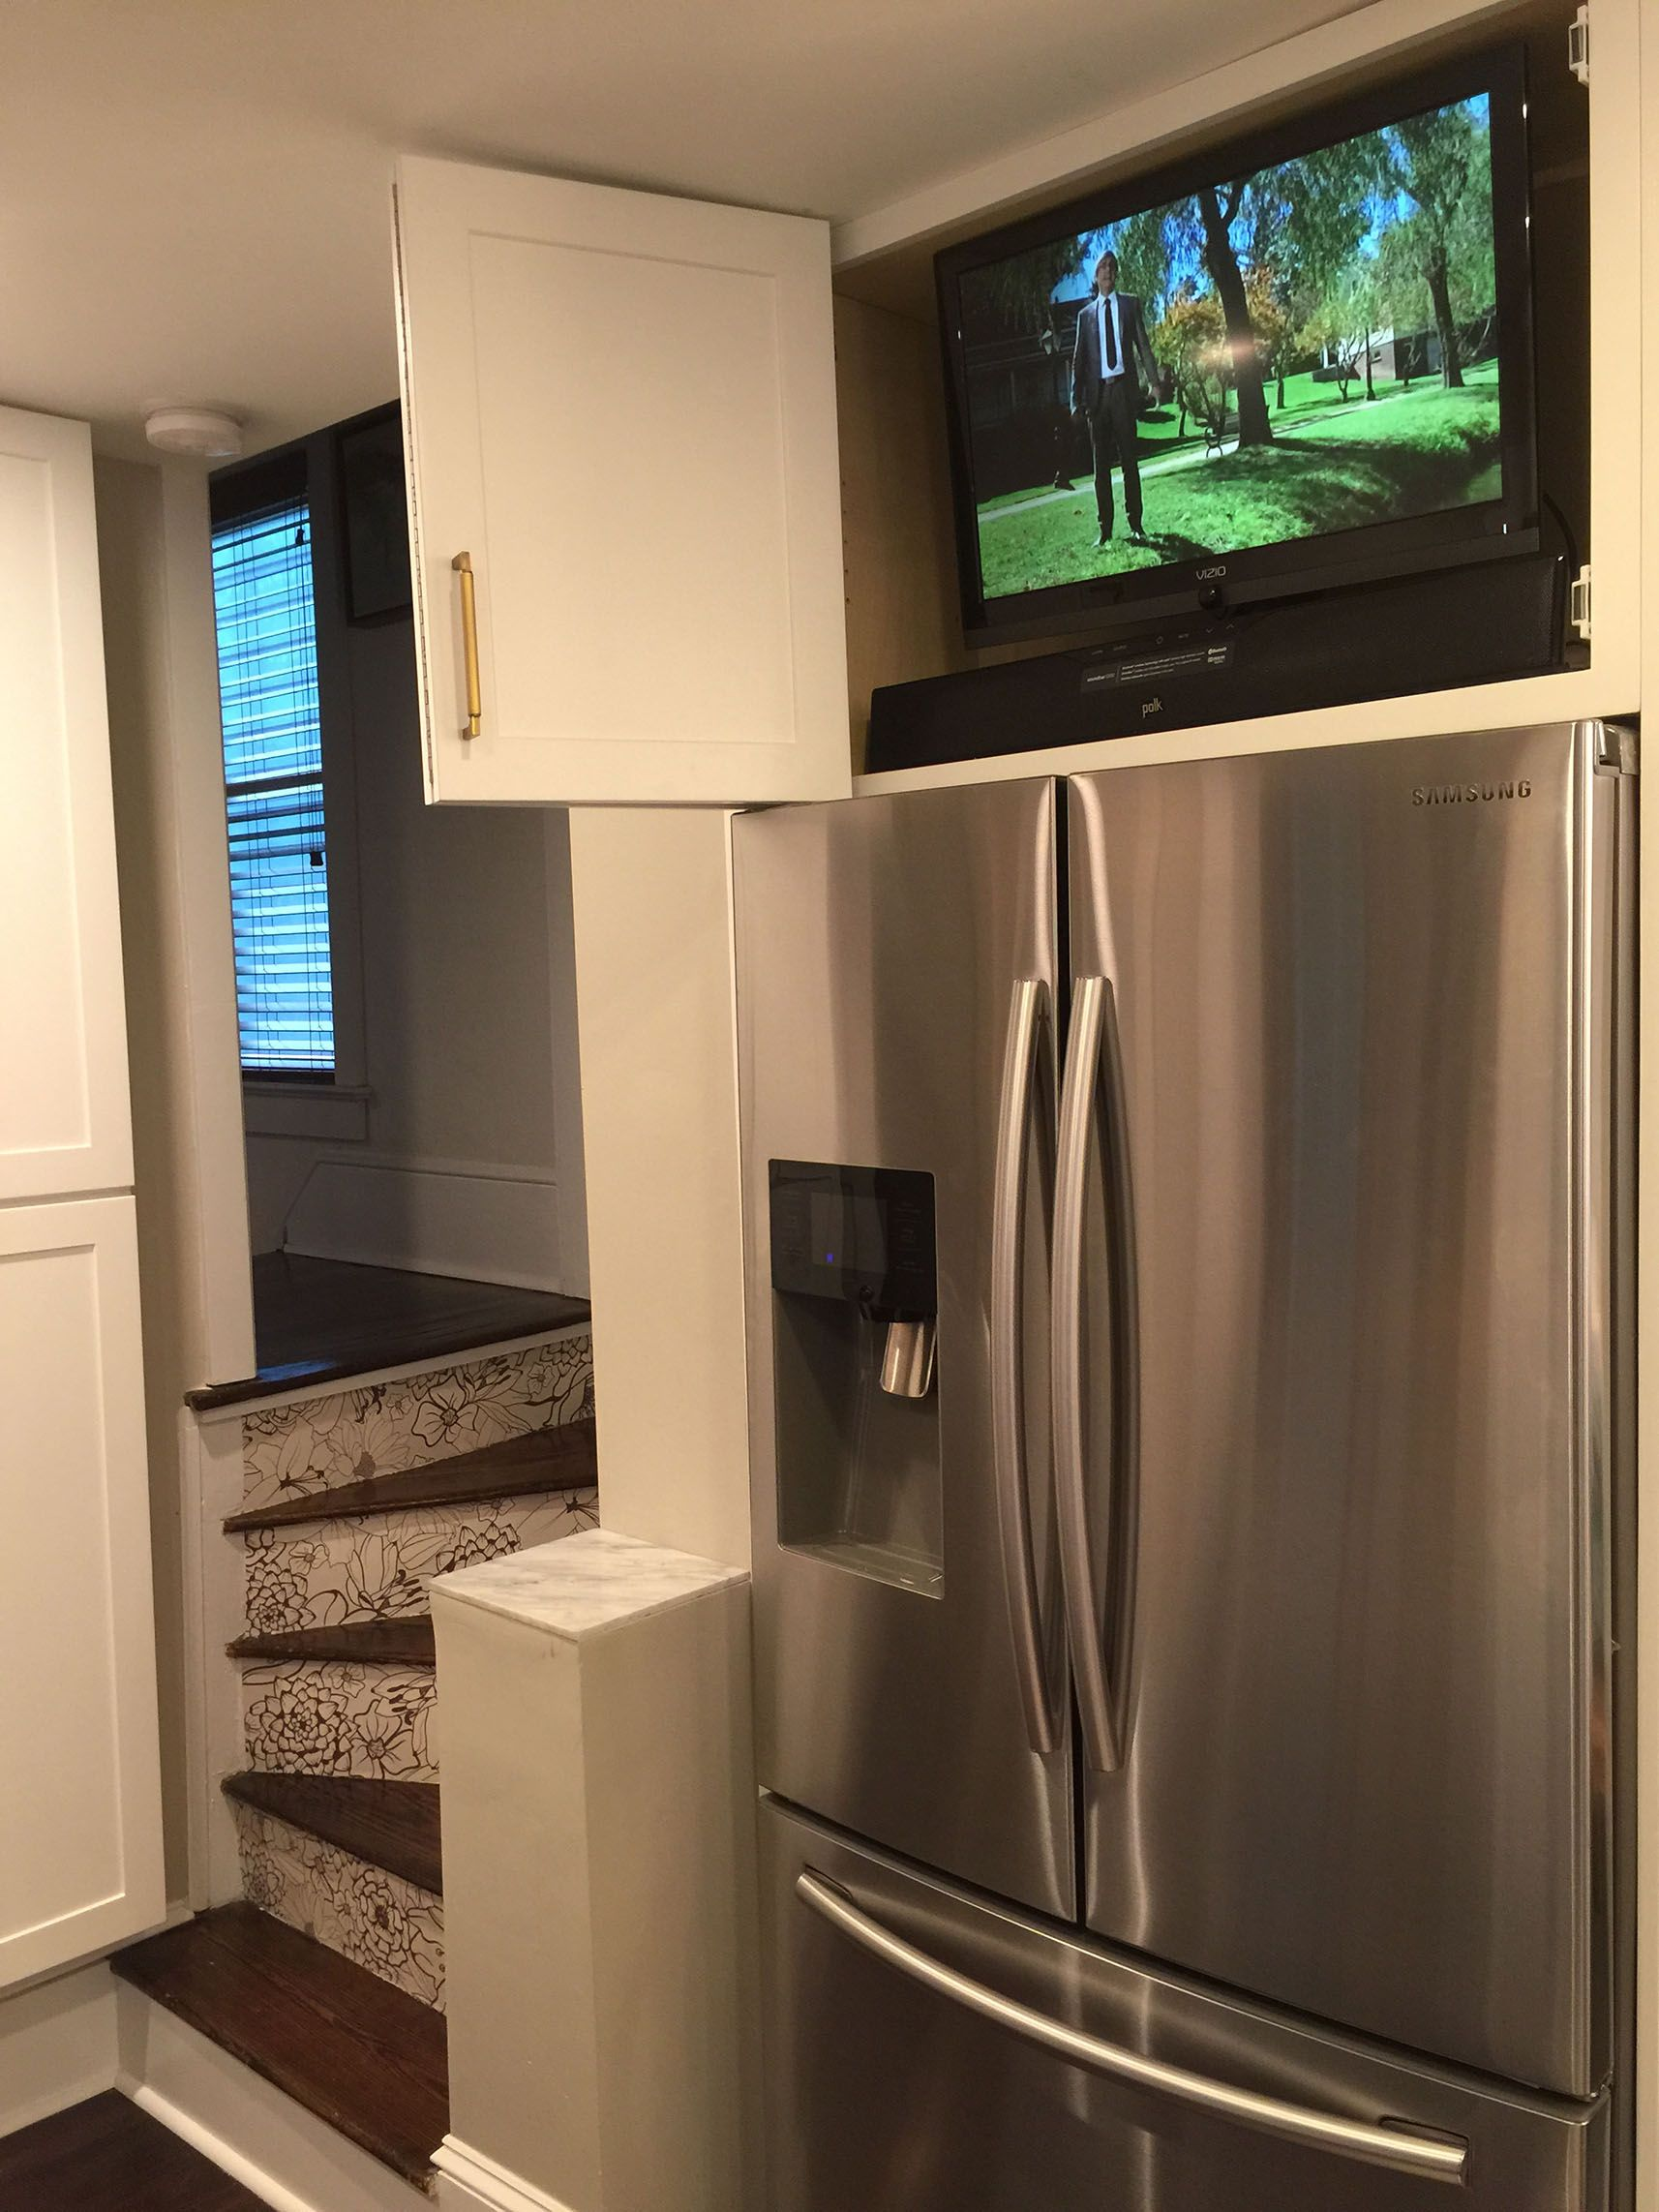 Tv In Cabinet Tv Over The Refrigerator Solid Wood Cabinets Cabinet Collingswood